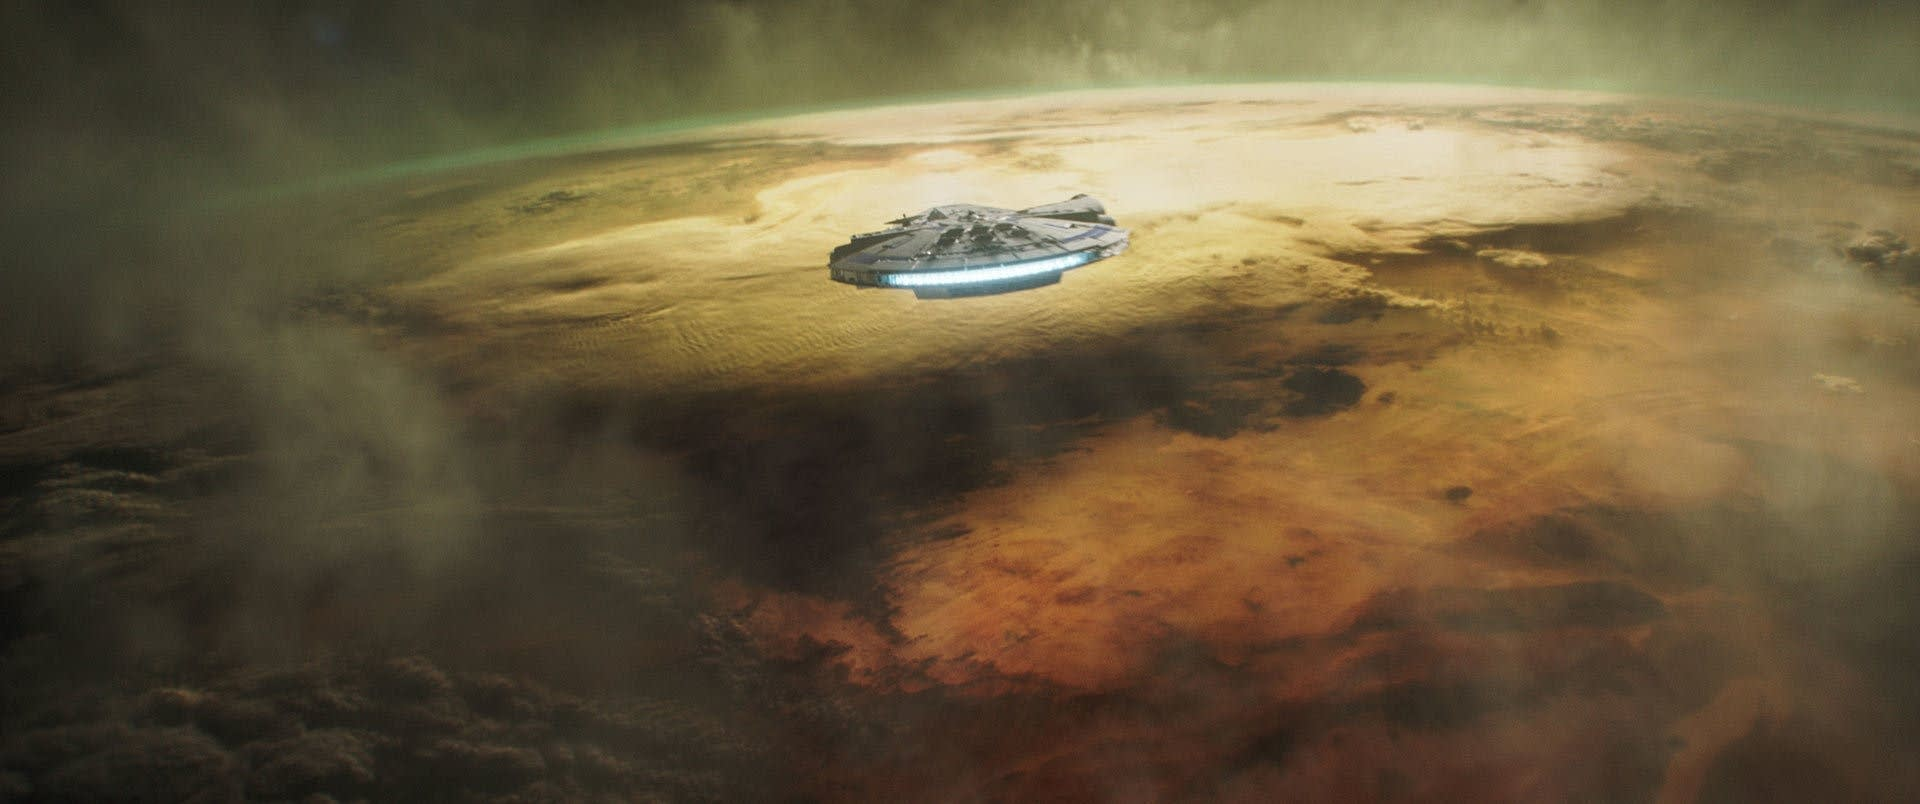 The Millennium Falcon in SOLO: A STAR WARS STORY.